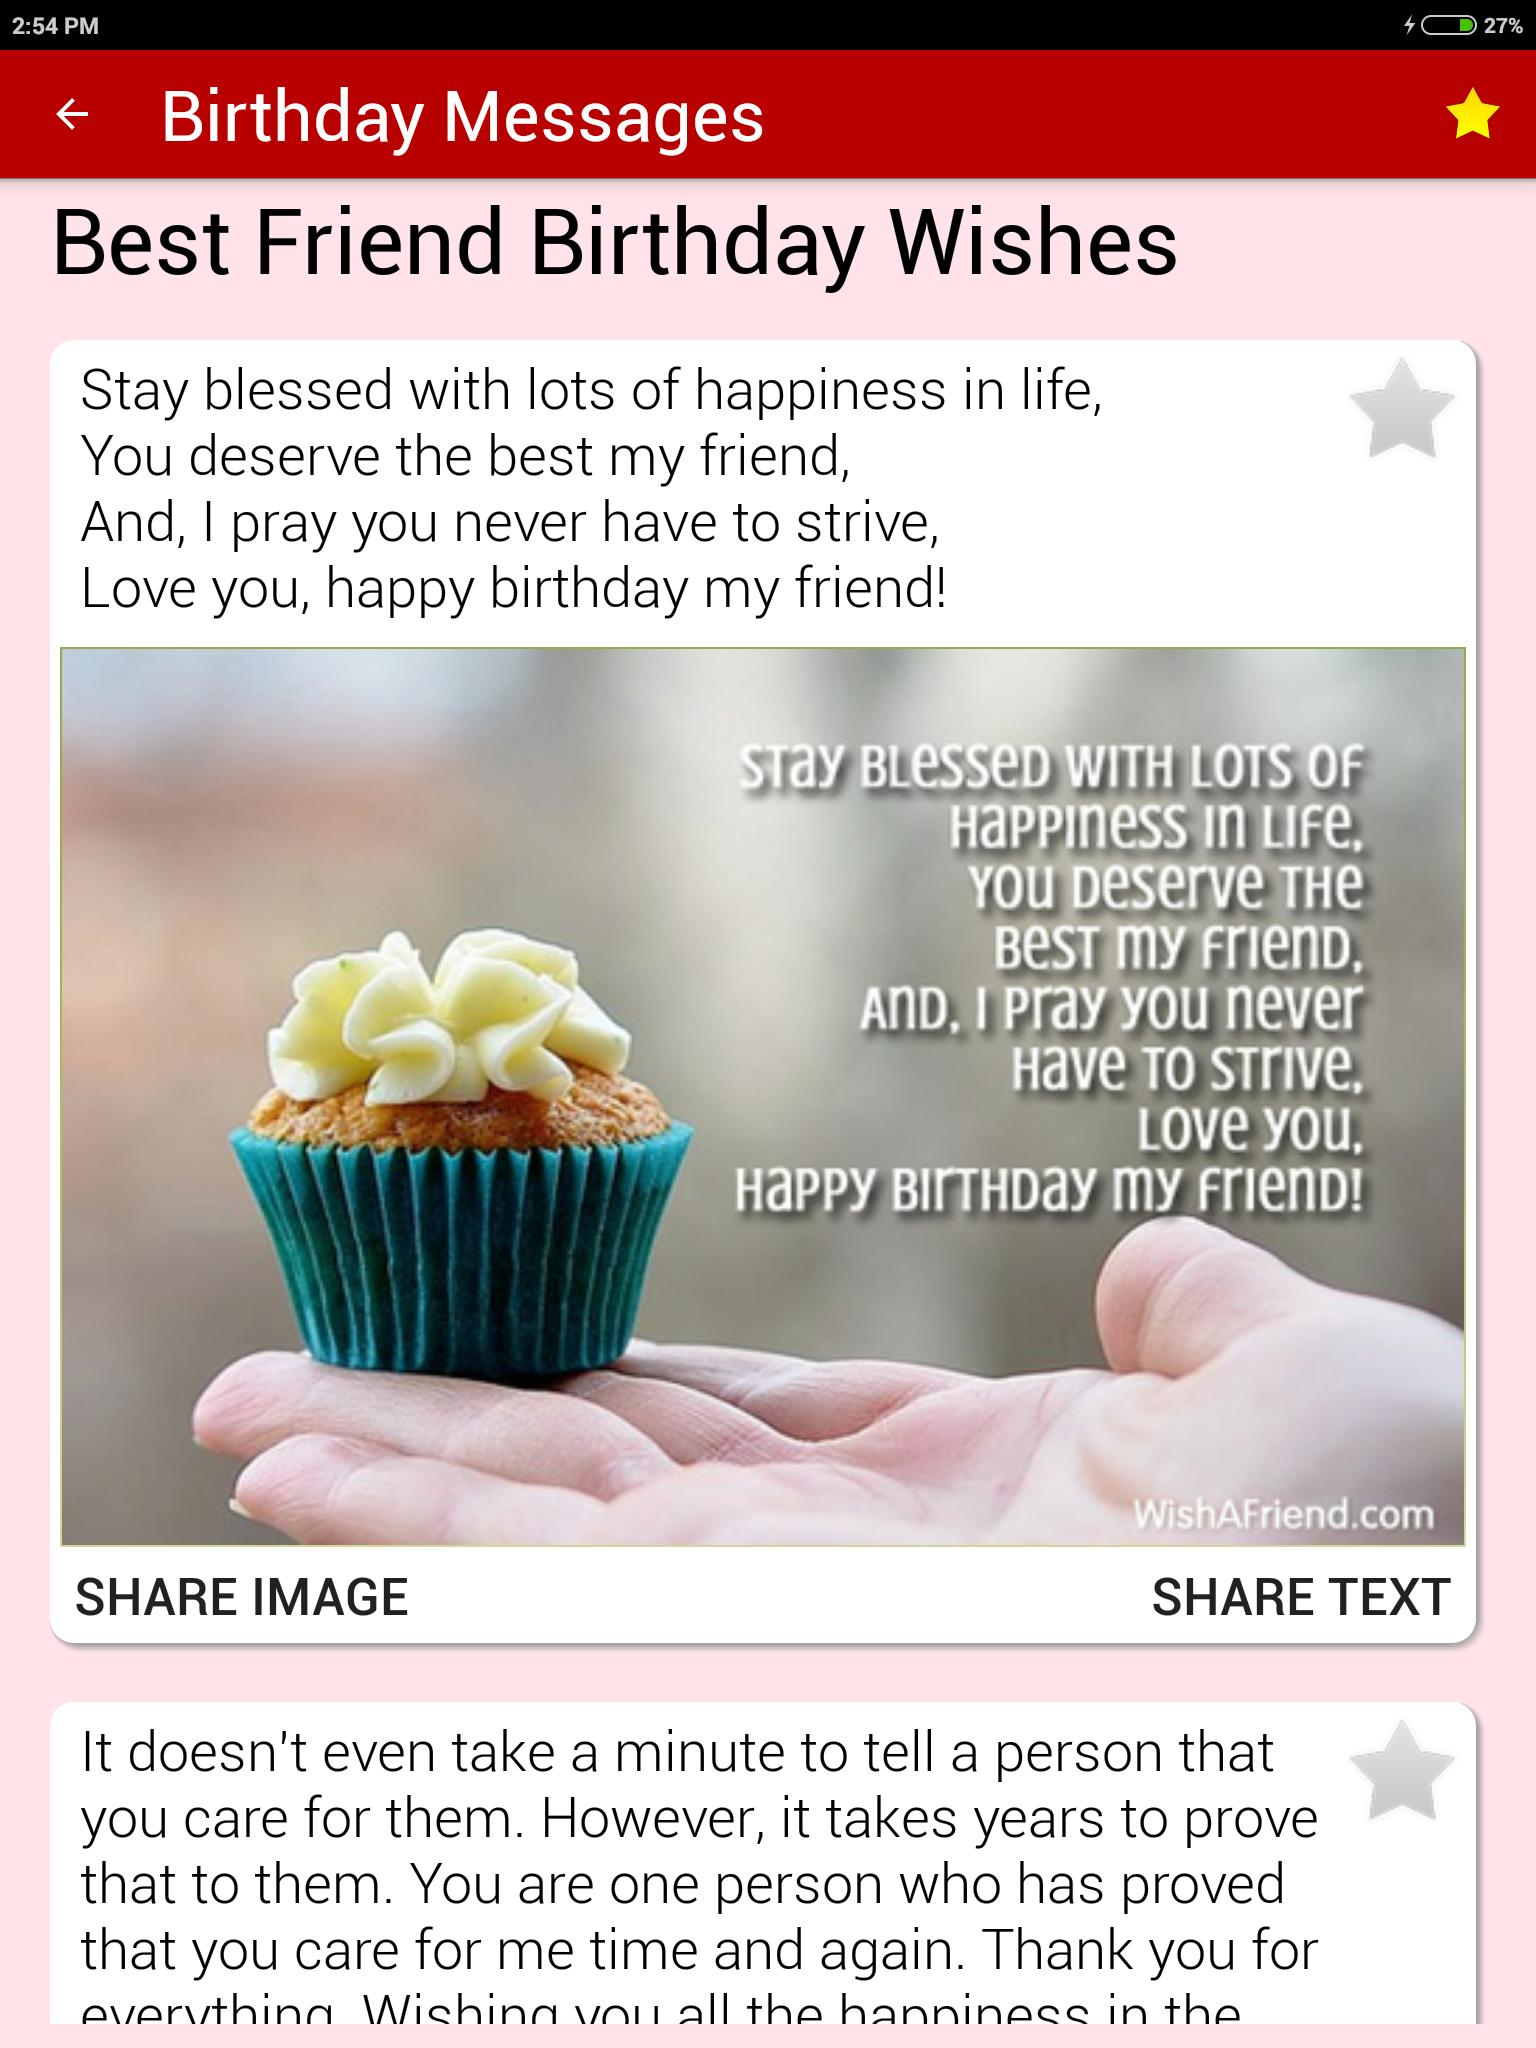 Birthday Cards & Messages - Wish Friends & Family for